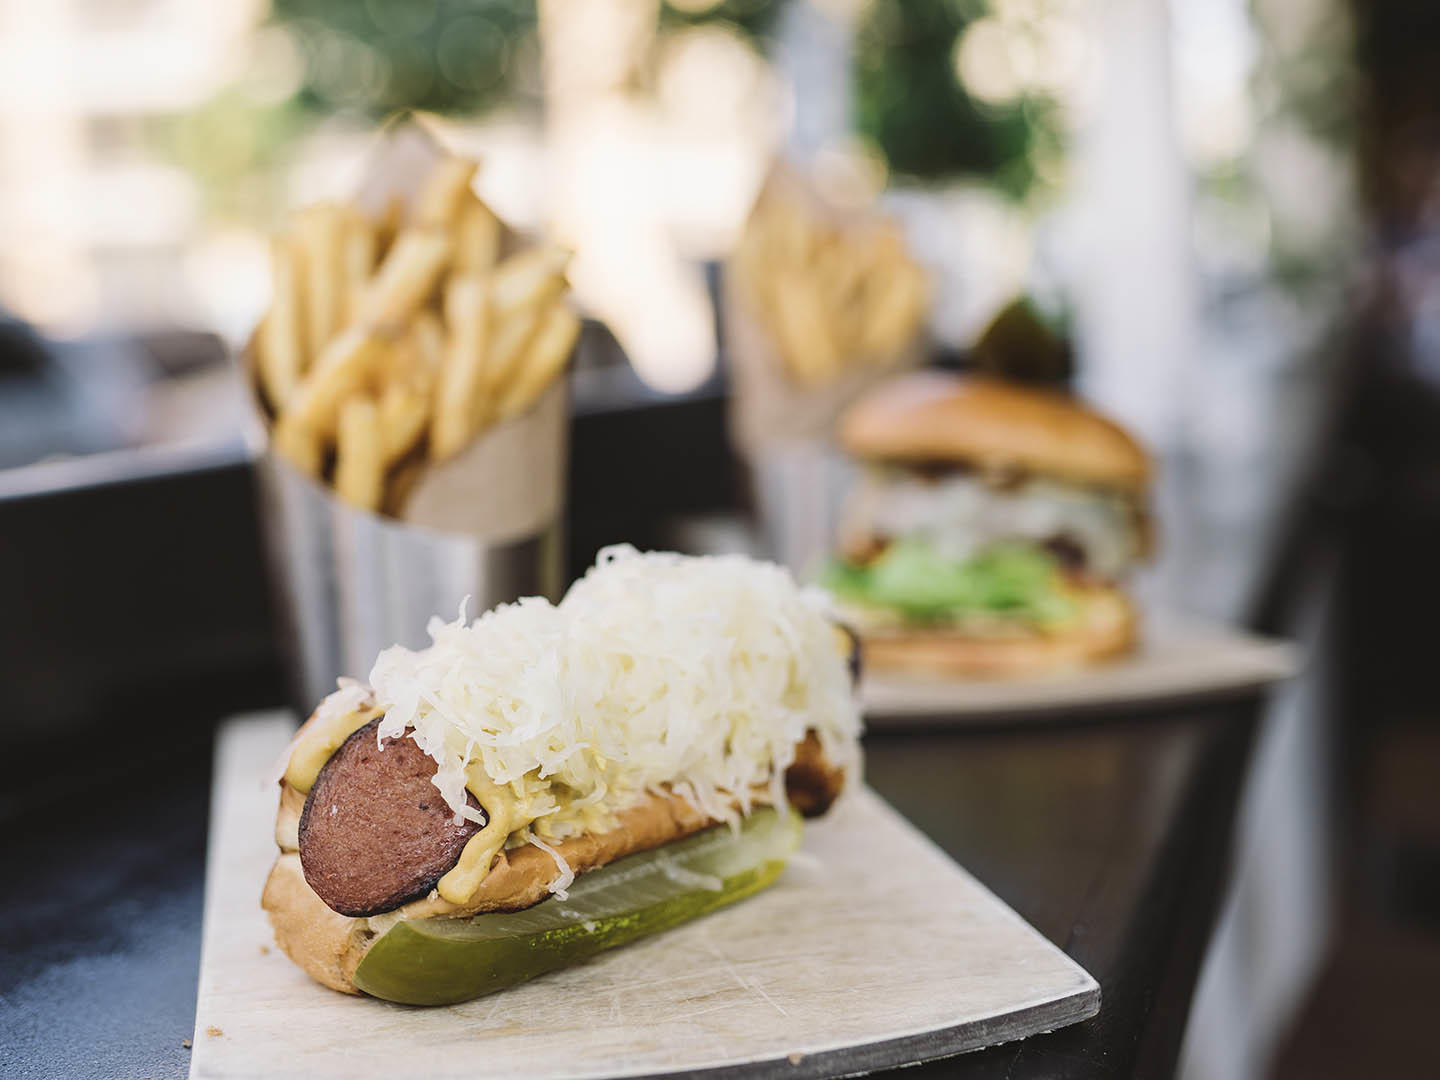 Hot dog with sauerkraut and toppings